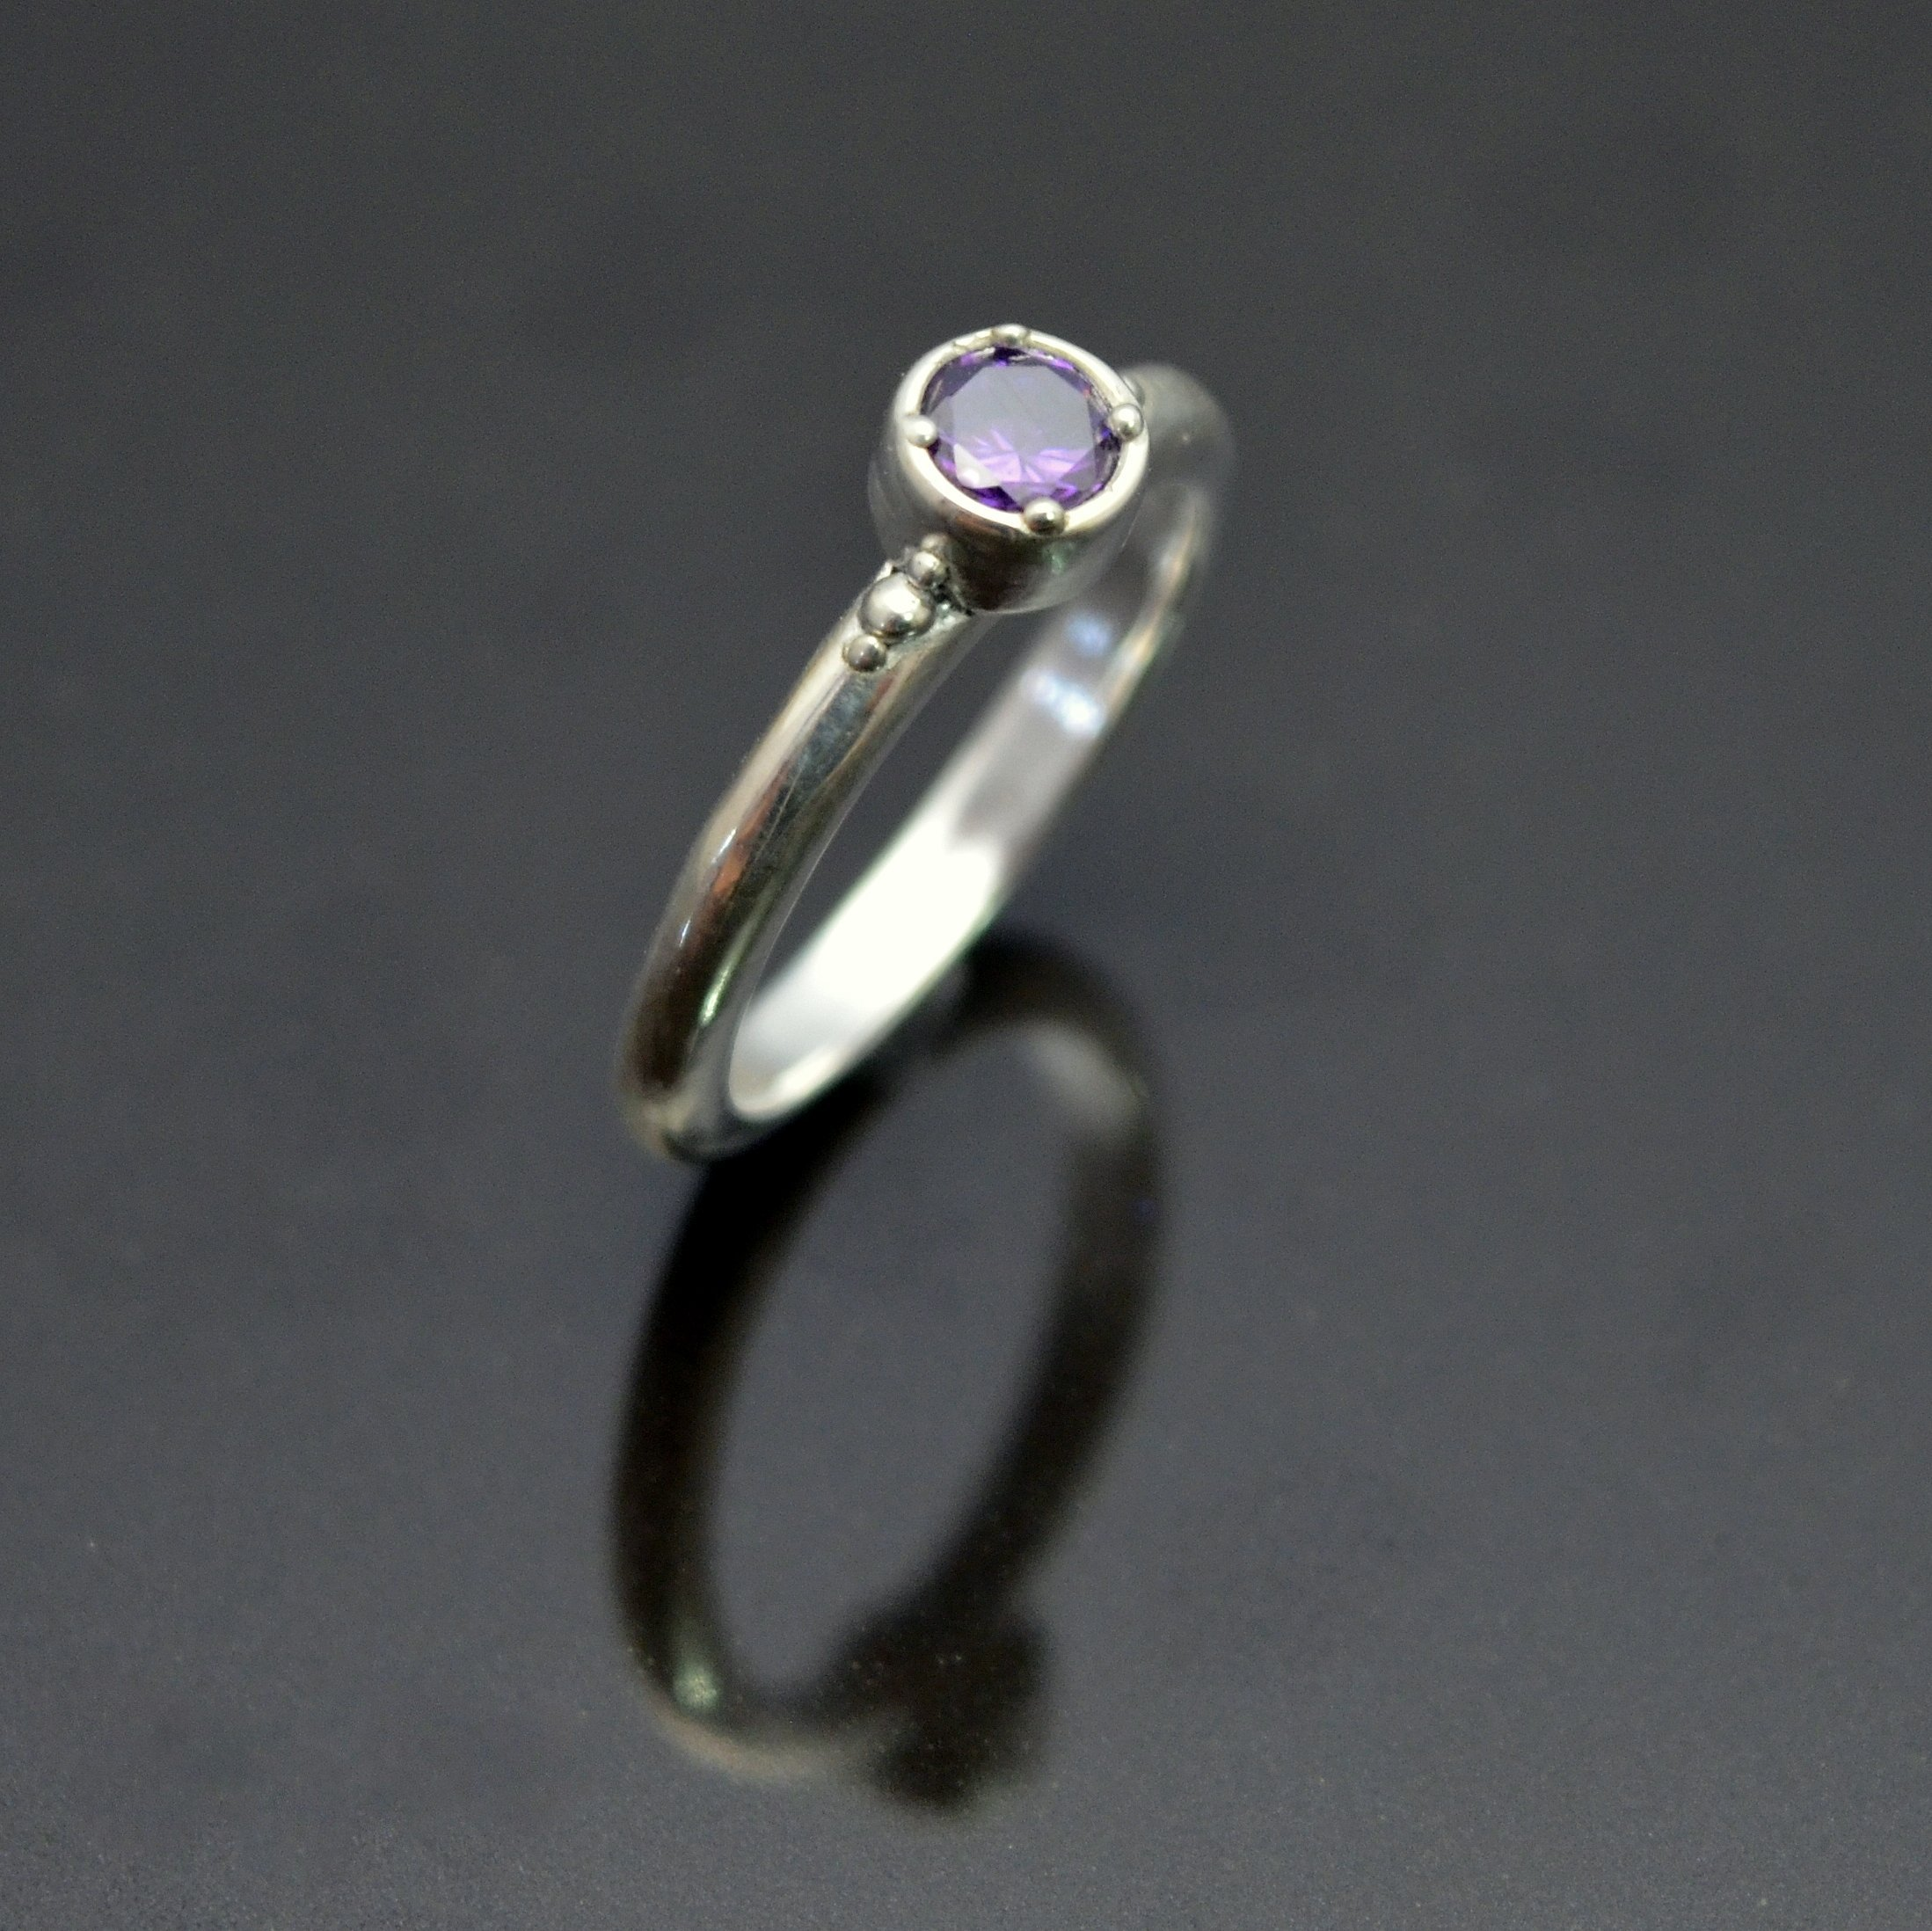 Amour Amethyst Ring by Tracey Spurgin of Craftworx Jewellery Workshops